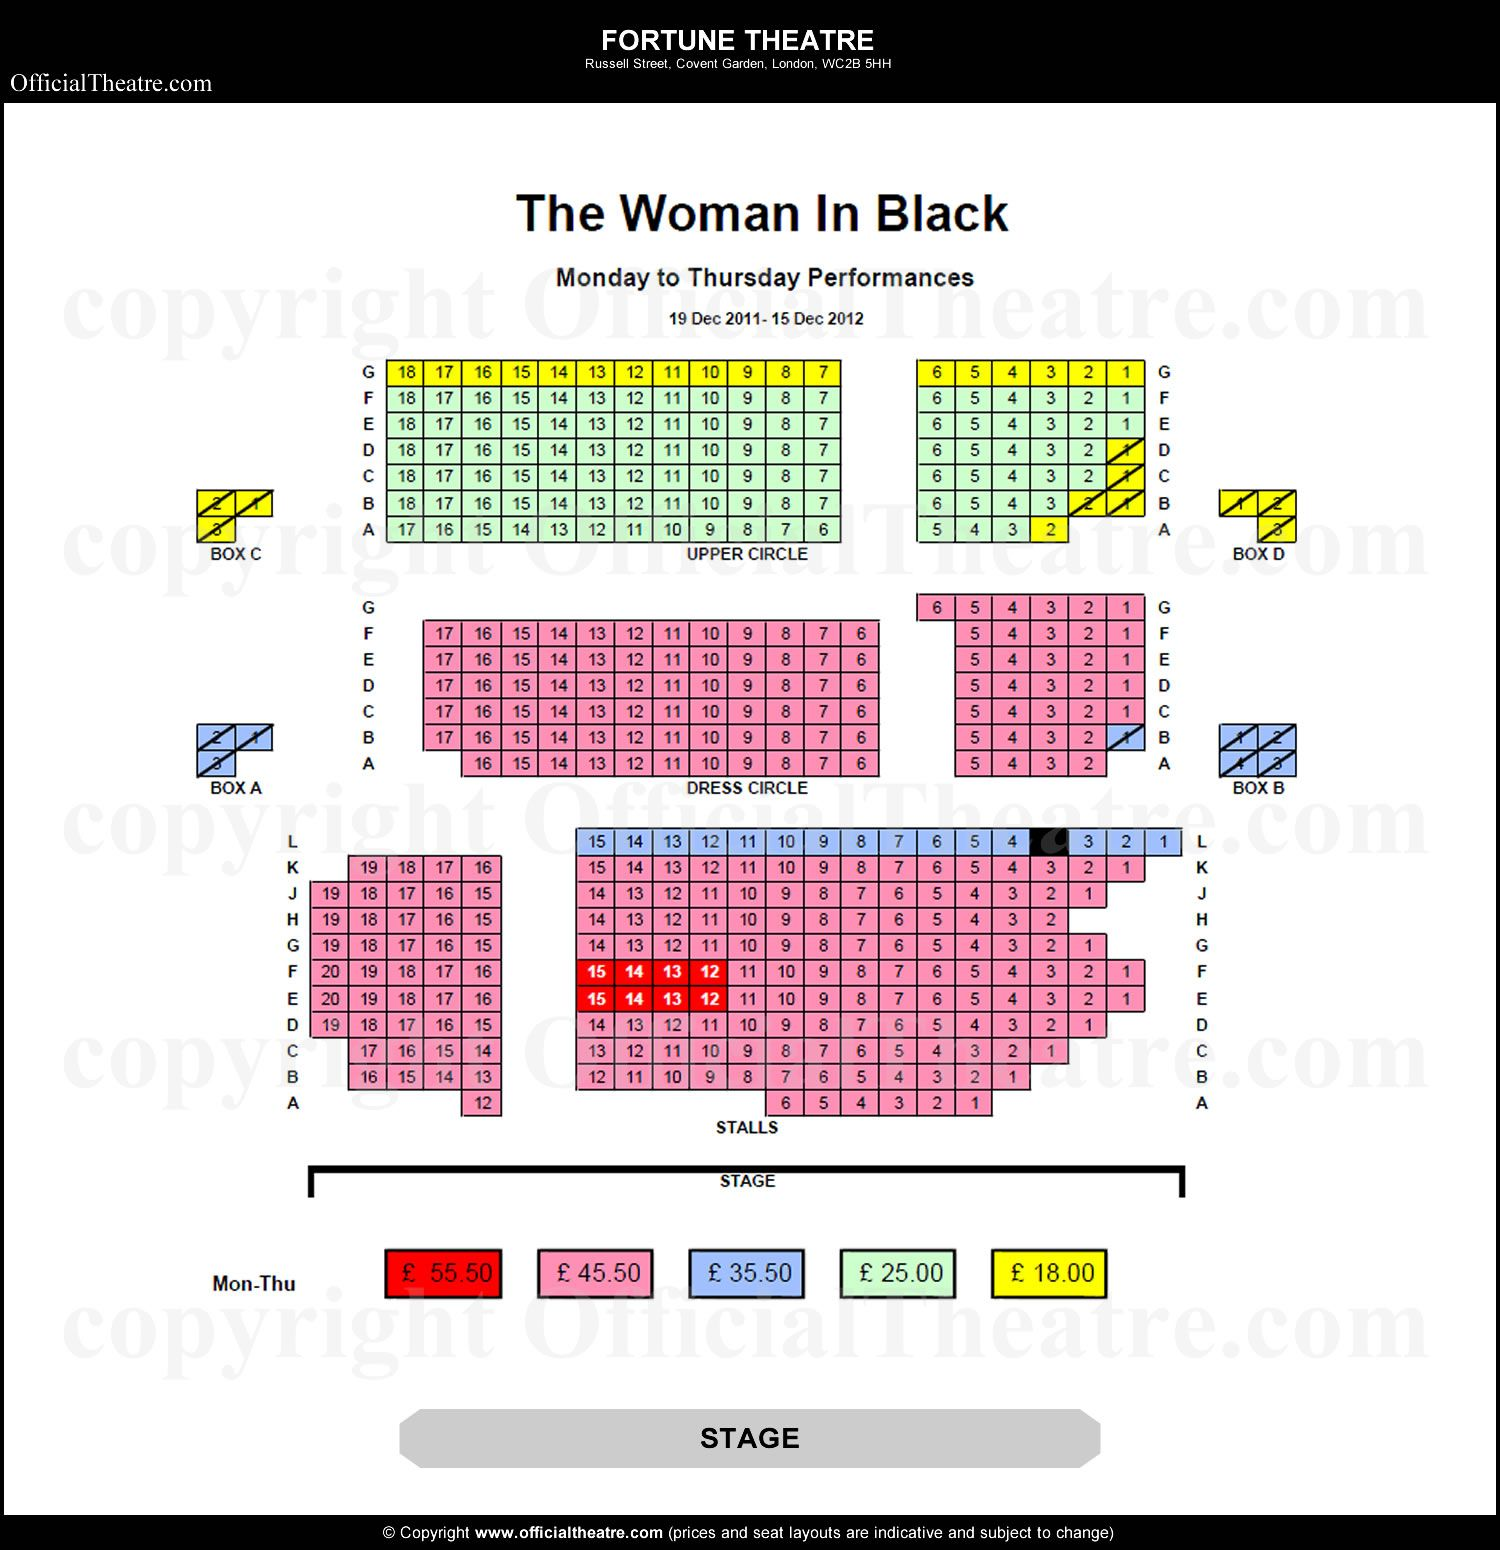 Fortune Theatre London Seat Map And Prices For The Woman In Black Fortune Theatre Seating Plan How To Plan